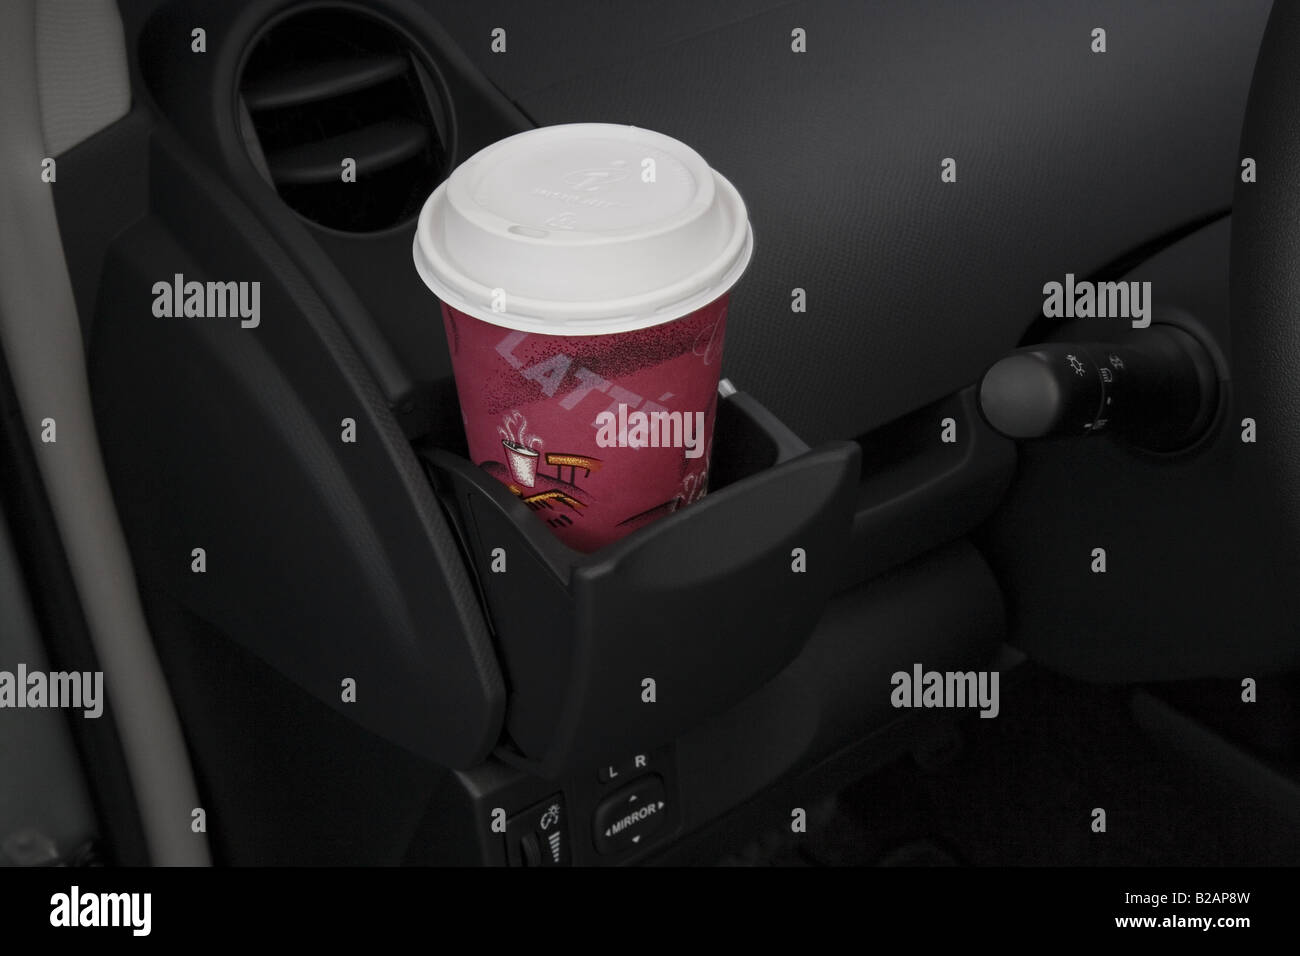 2008 toyota yaris in gray cup holder with prop stock photo royalty free im. Black Bedroom Furniture Sets. Home Design Ideas